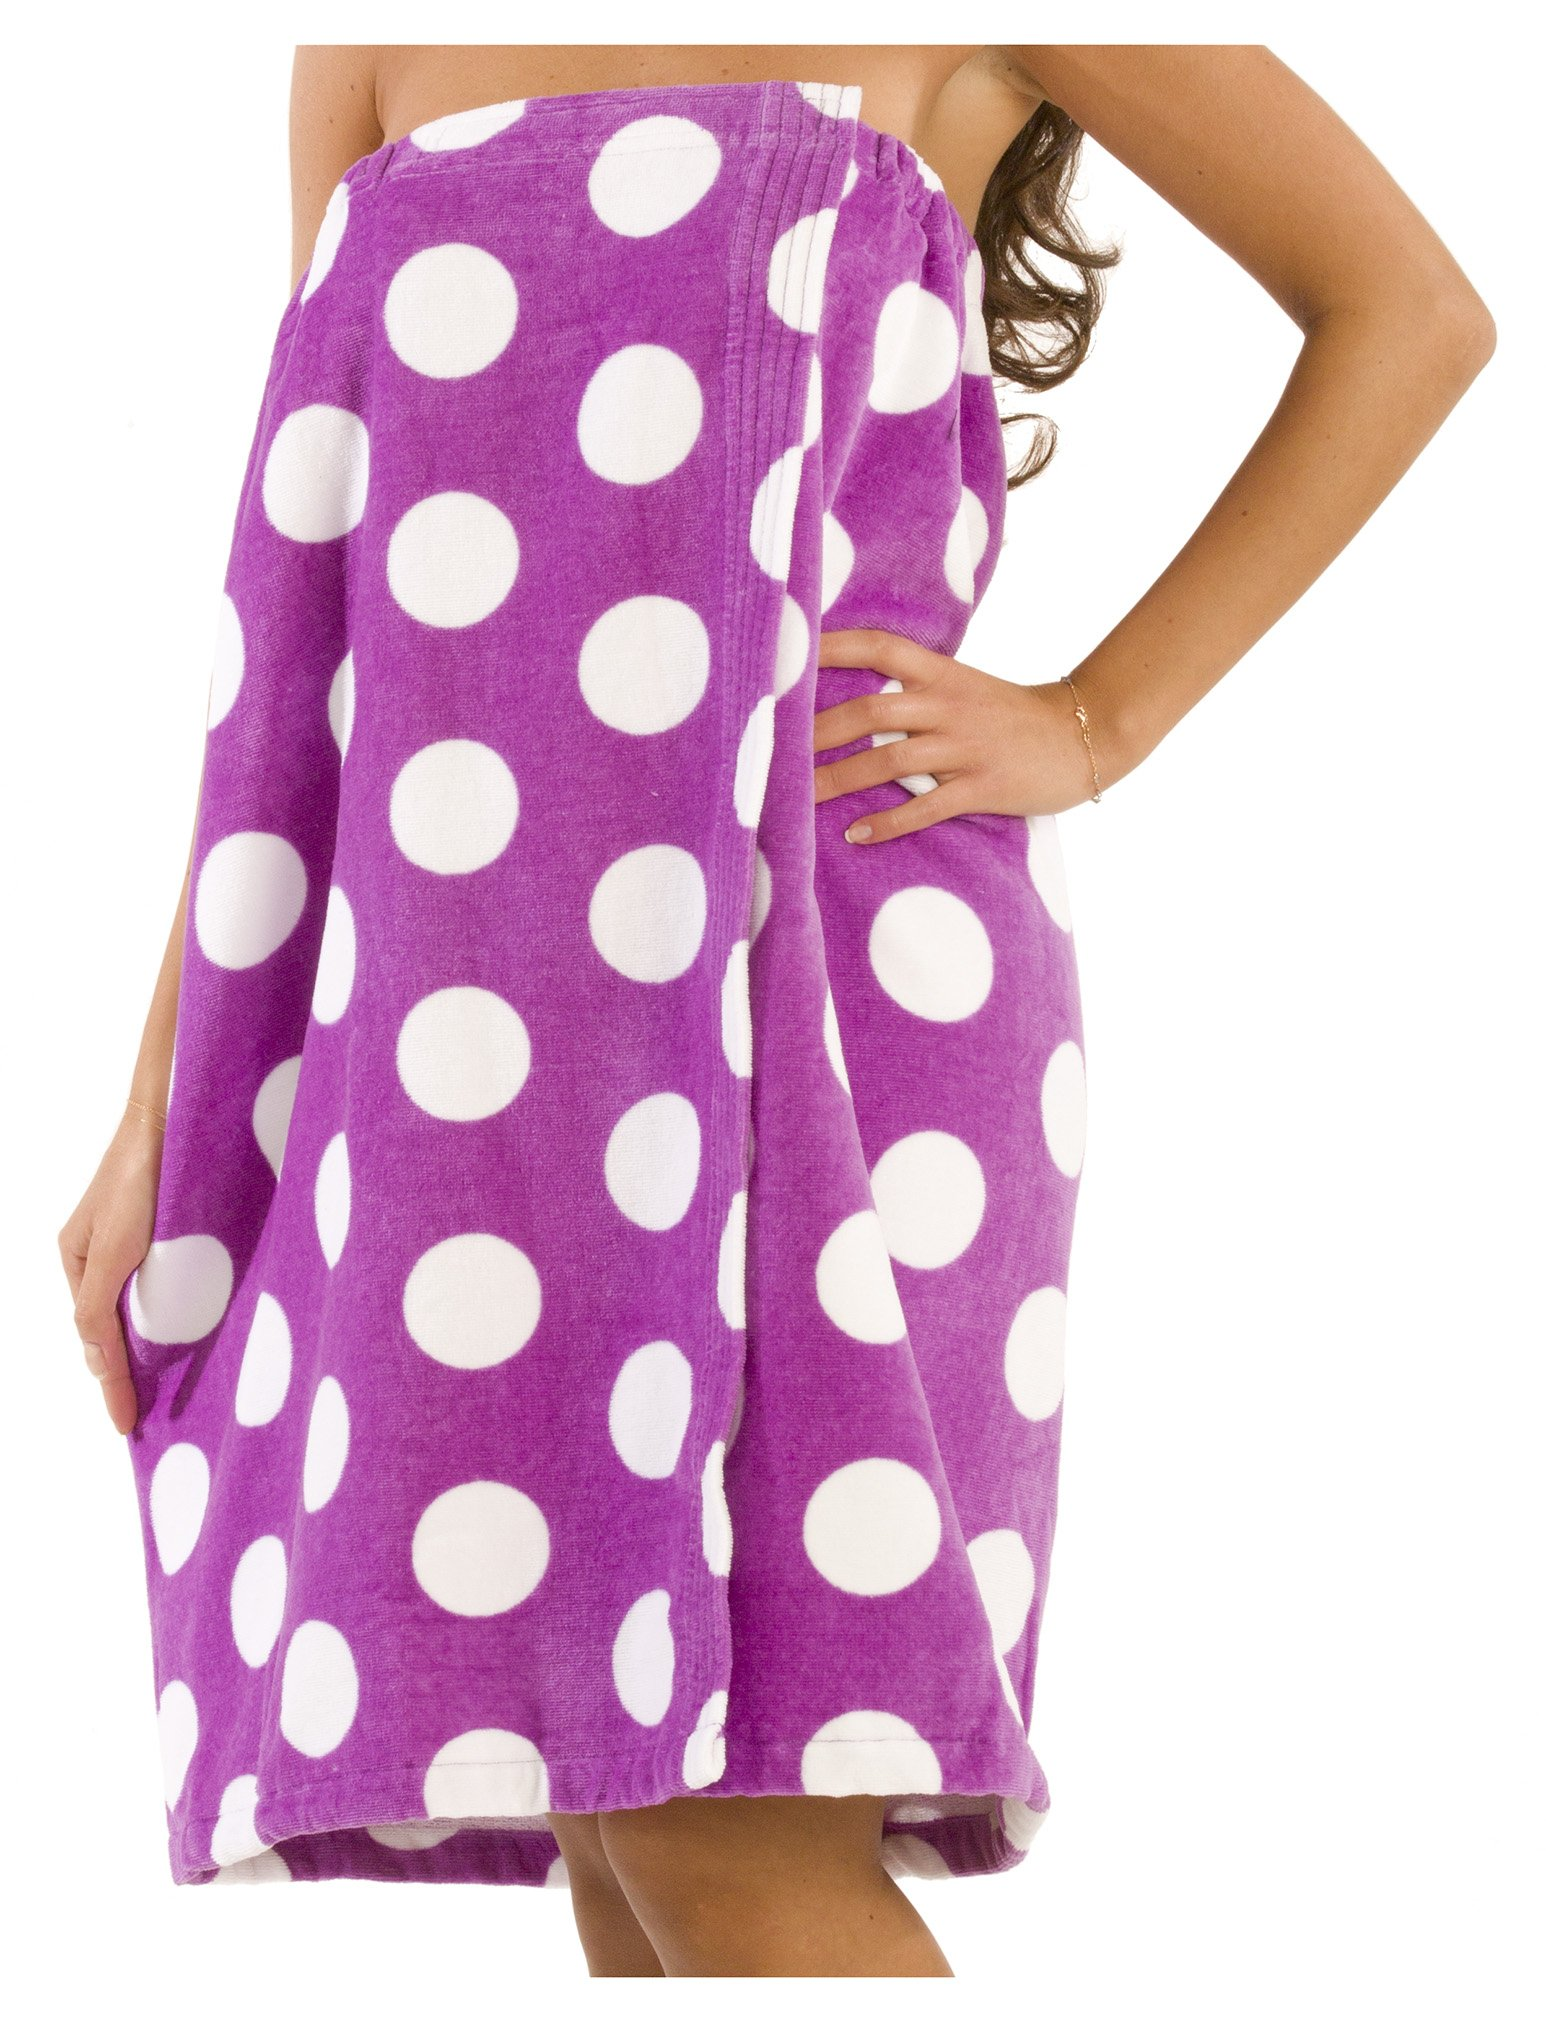 byLora Terry Cotton Spa Wrap Towel for Women Ladies Shower Cover Up, Purple - XXL Size